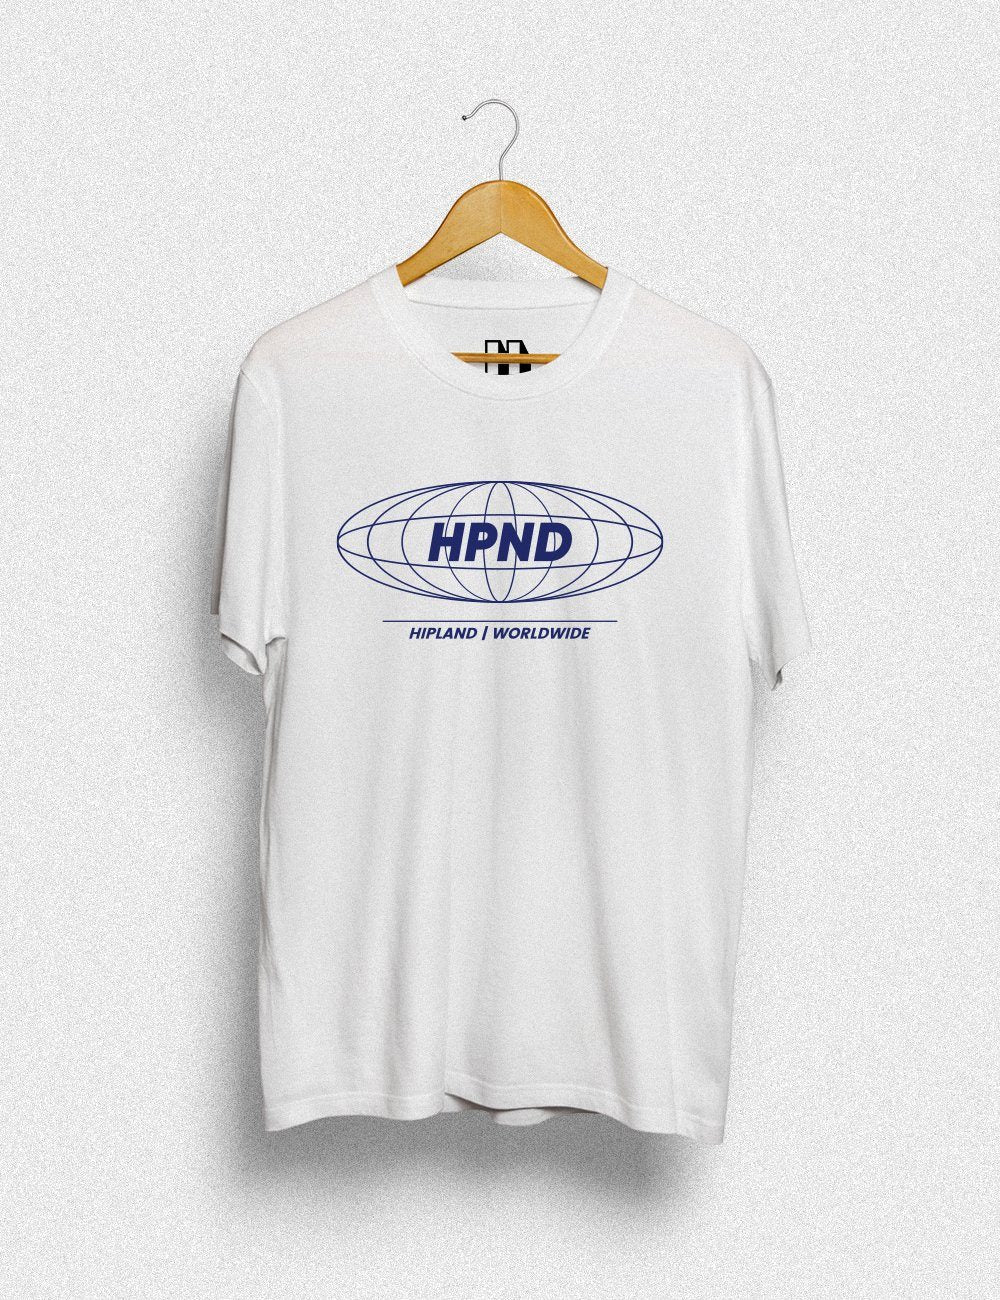 Clothing - Hipland HPND Blue Unisex T-shirt In White